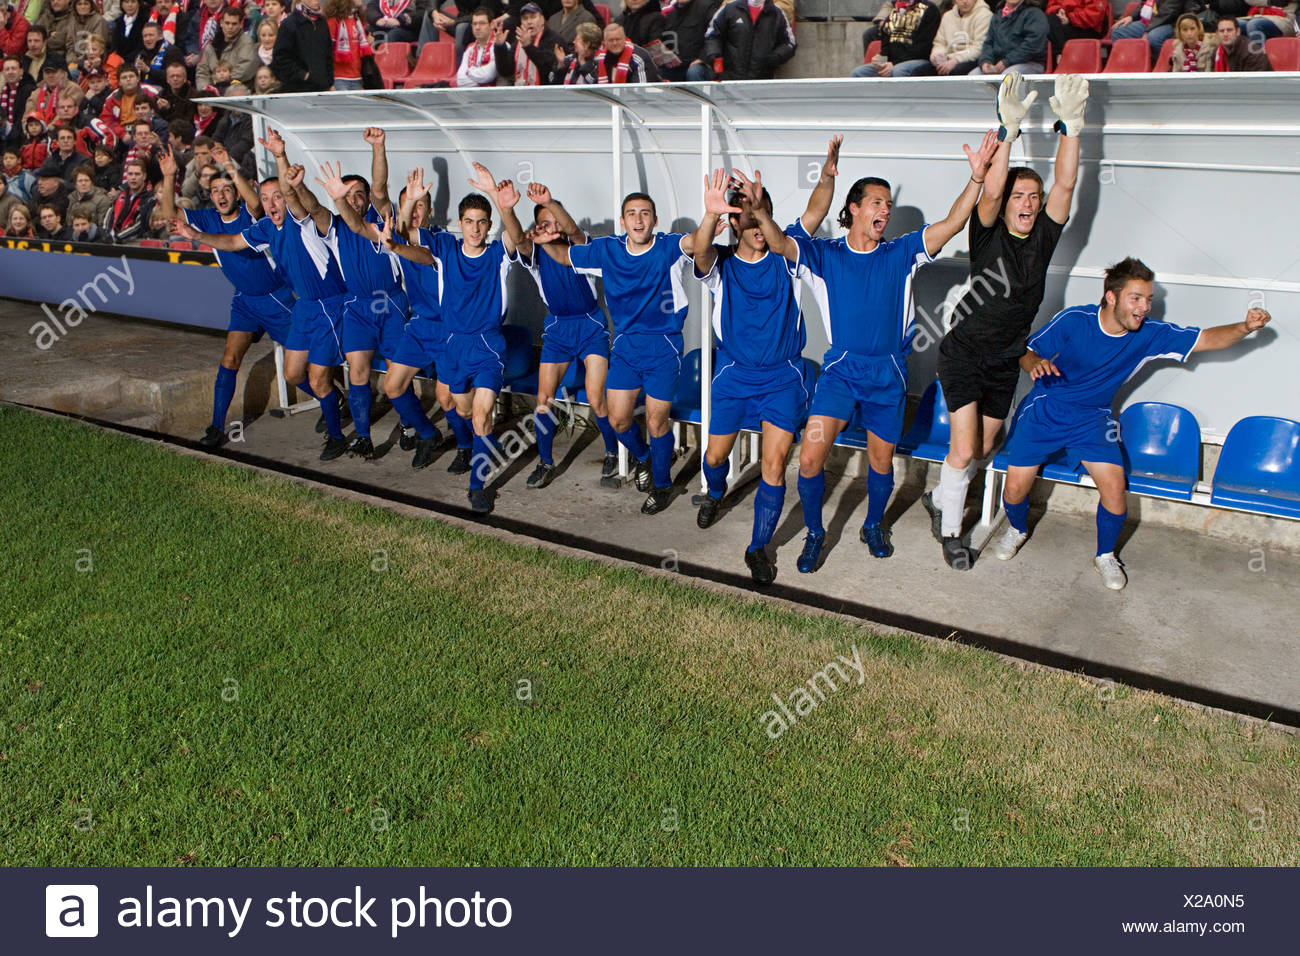 Footballers celebrating - Stock Image